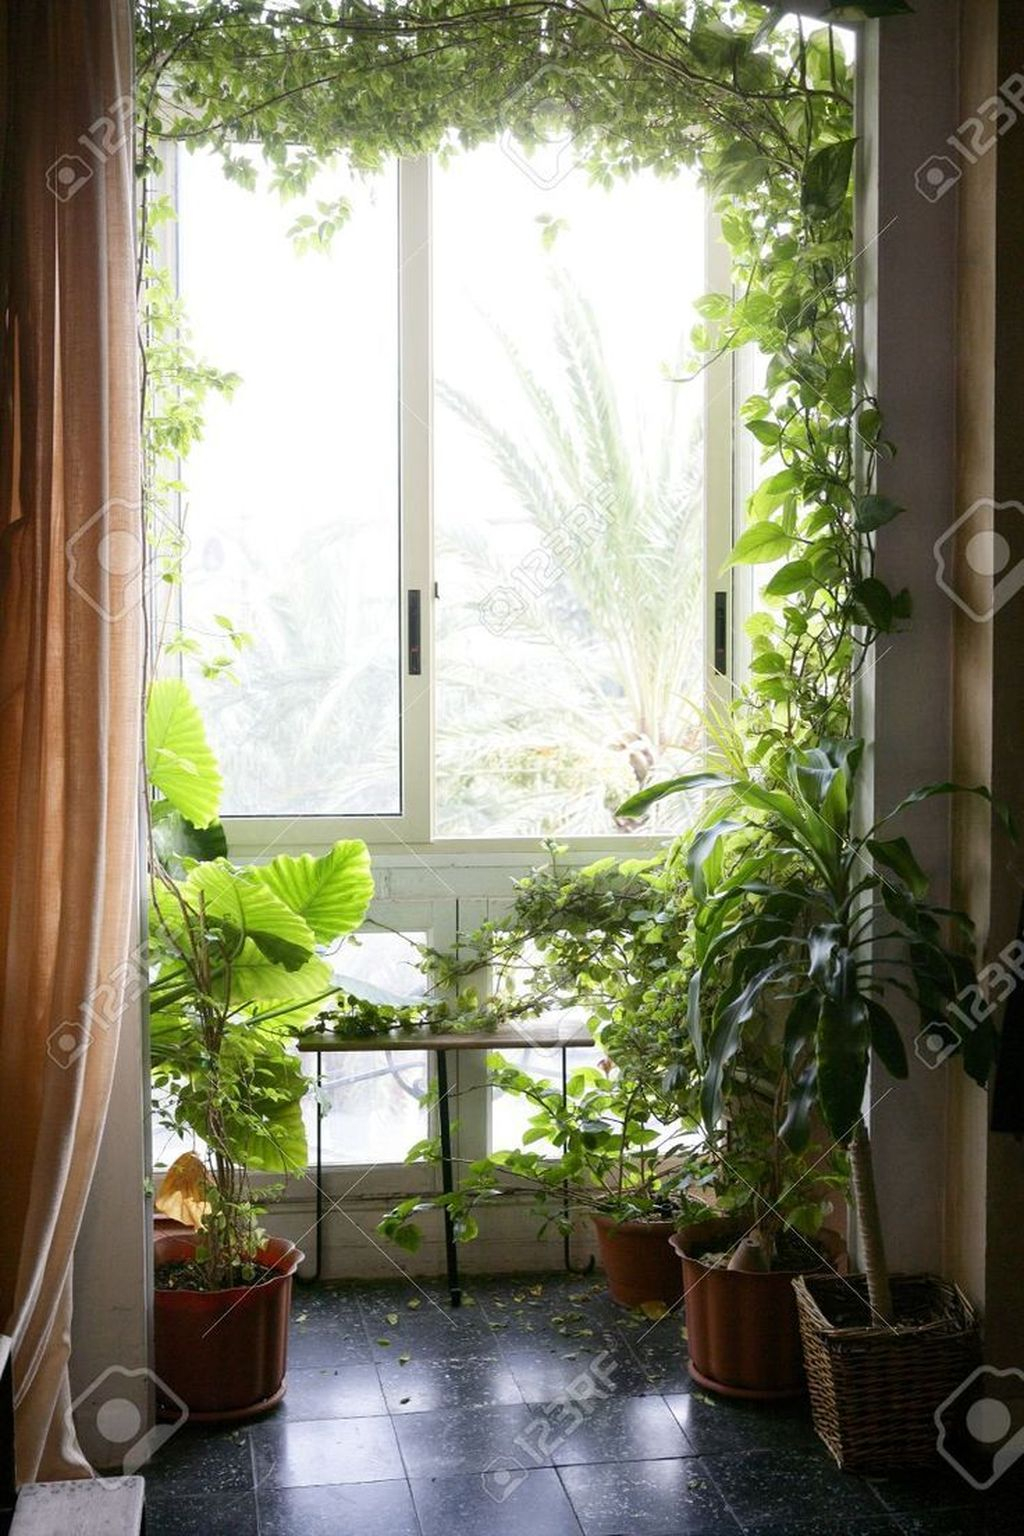 Smart Interior Design Ideas With Plants For Home 32